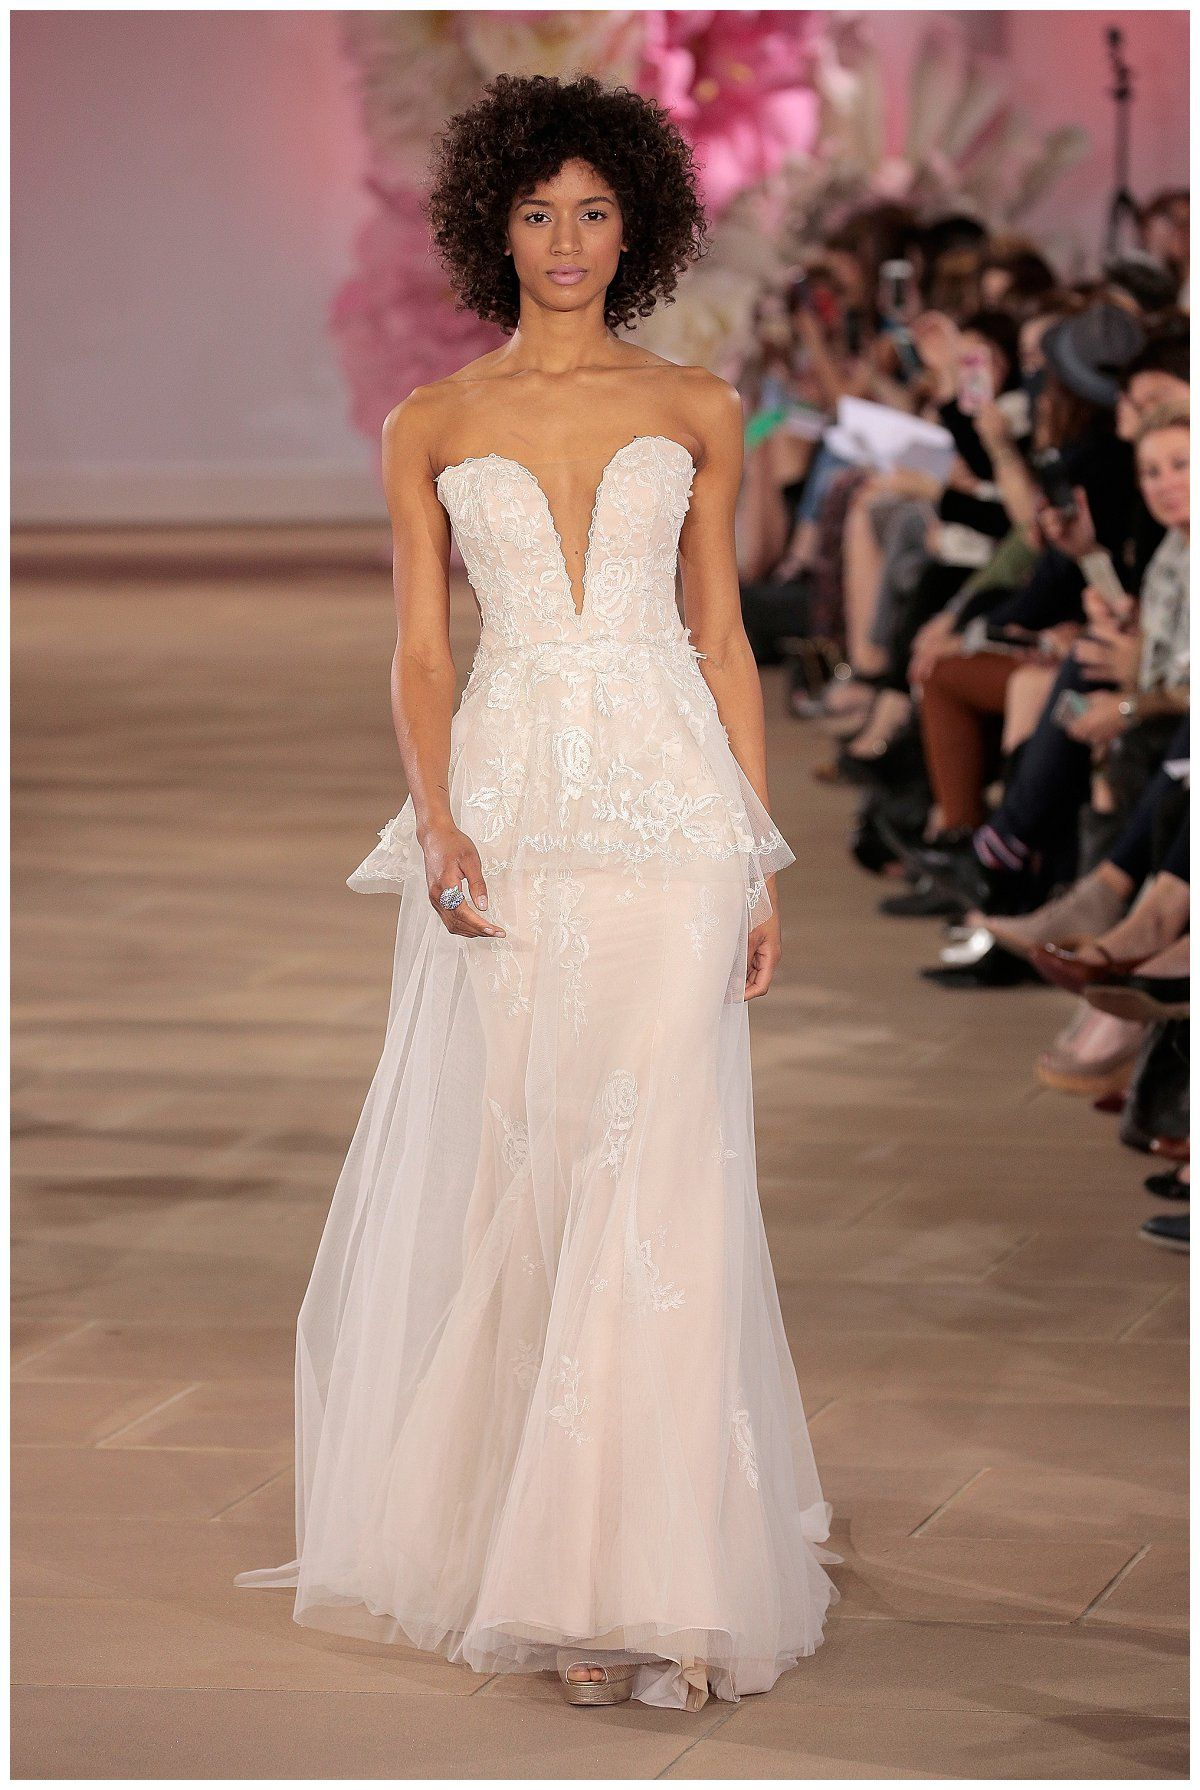 White summer wedding dress  Wedding dress by Ines Di Santo from the SpringSummer